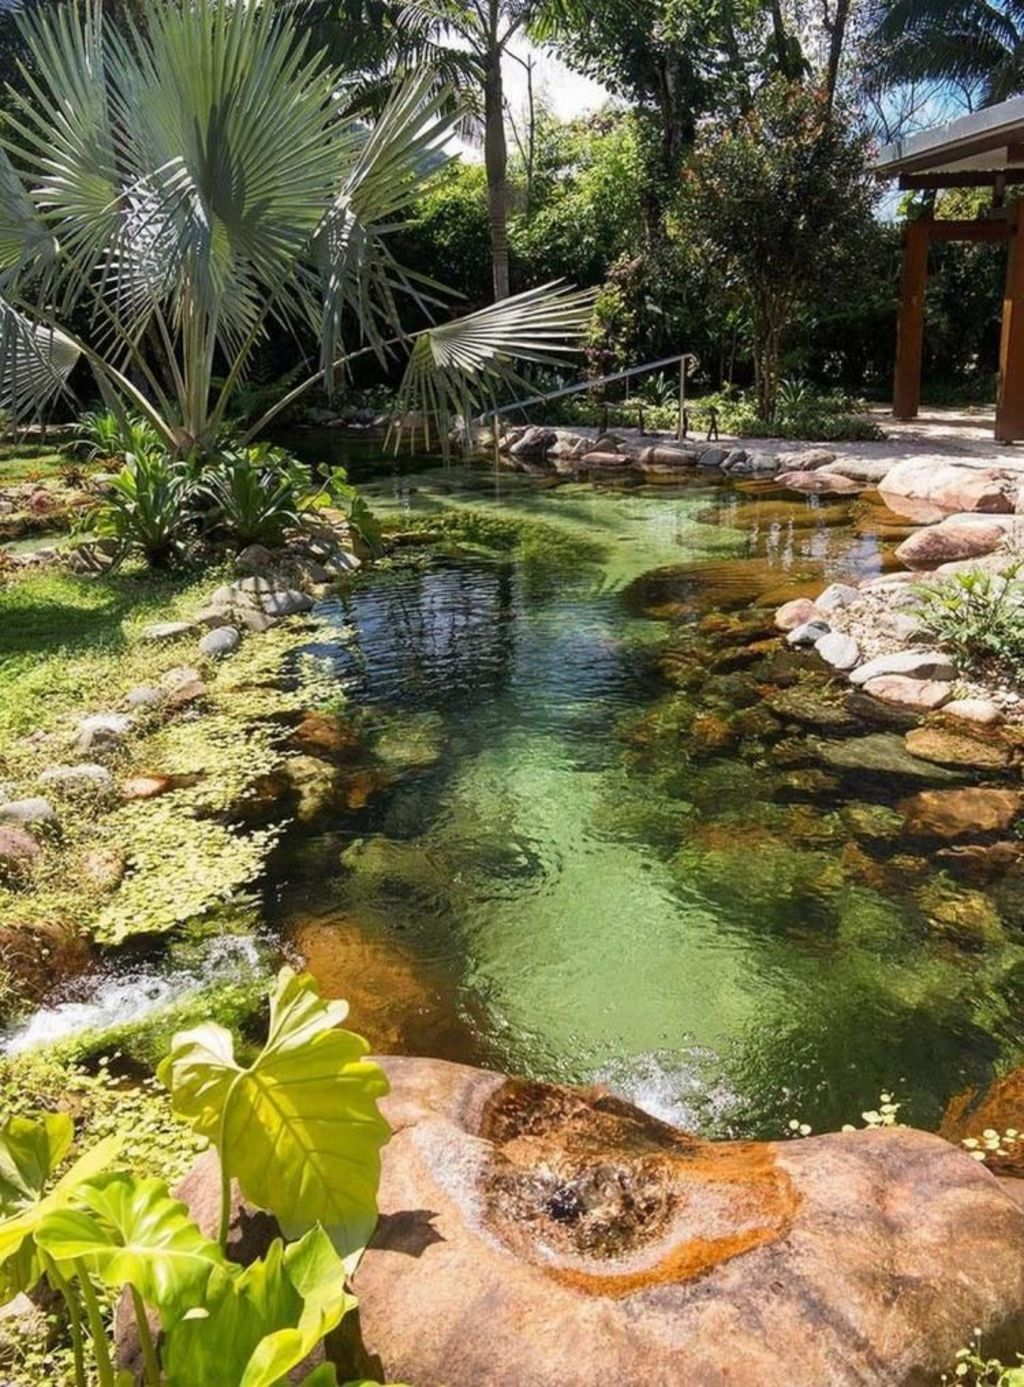 Natural swimming pools designs using plants or a combination of plants and sand filters Part 22